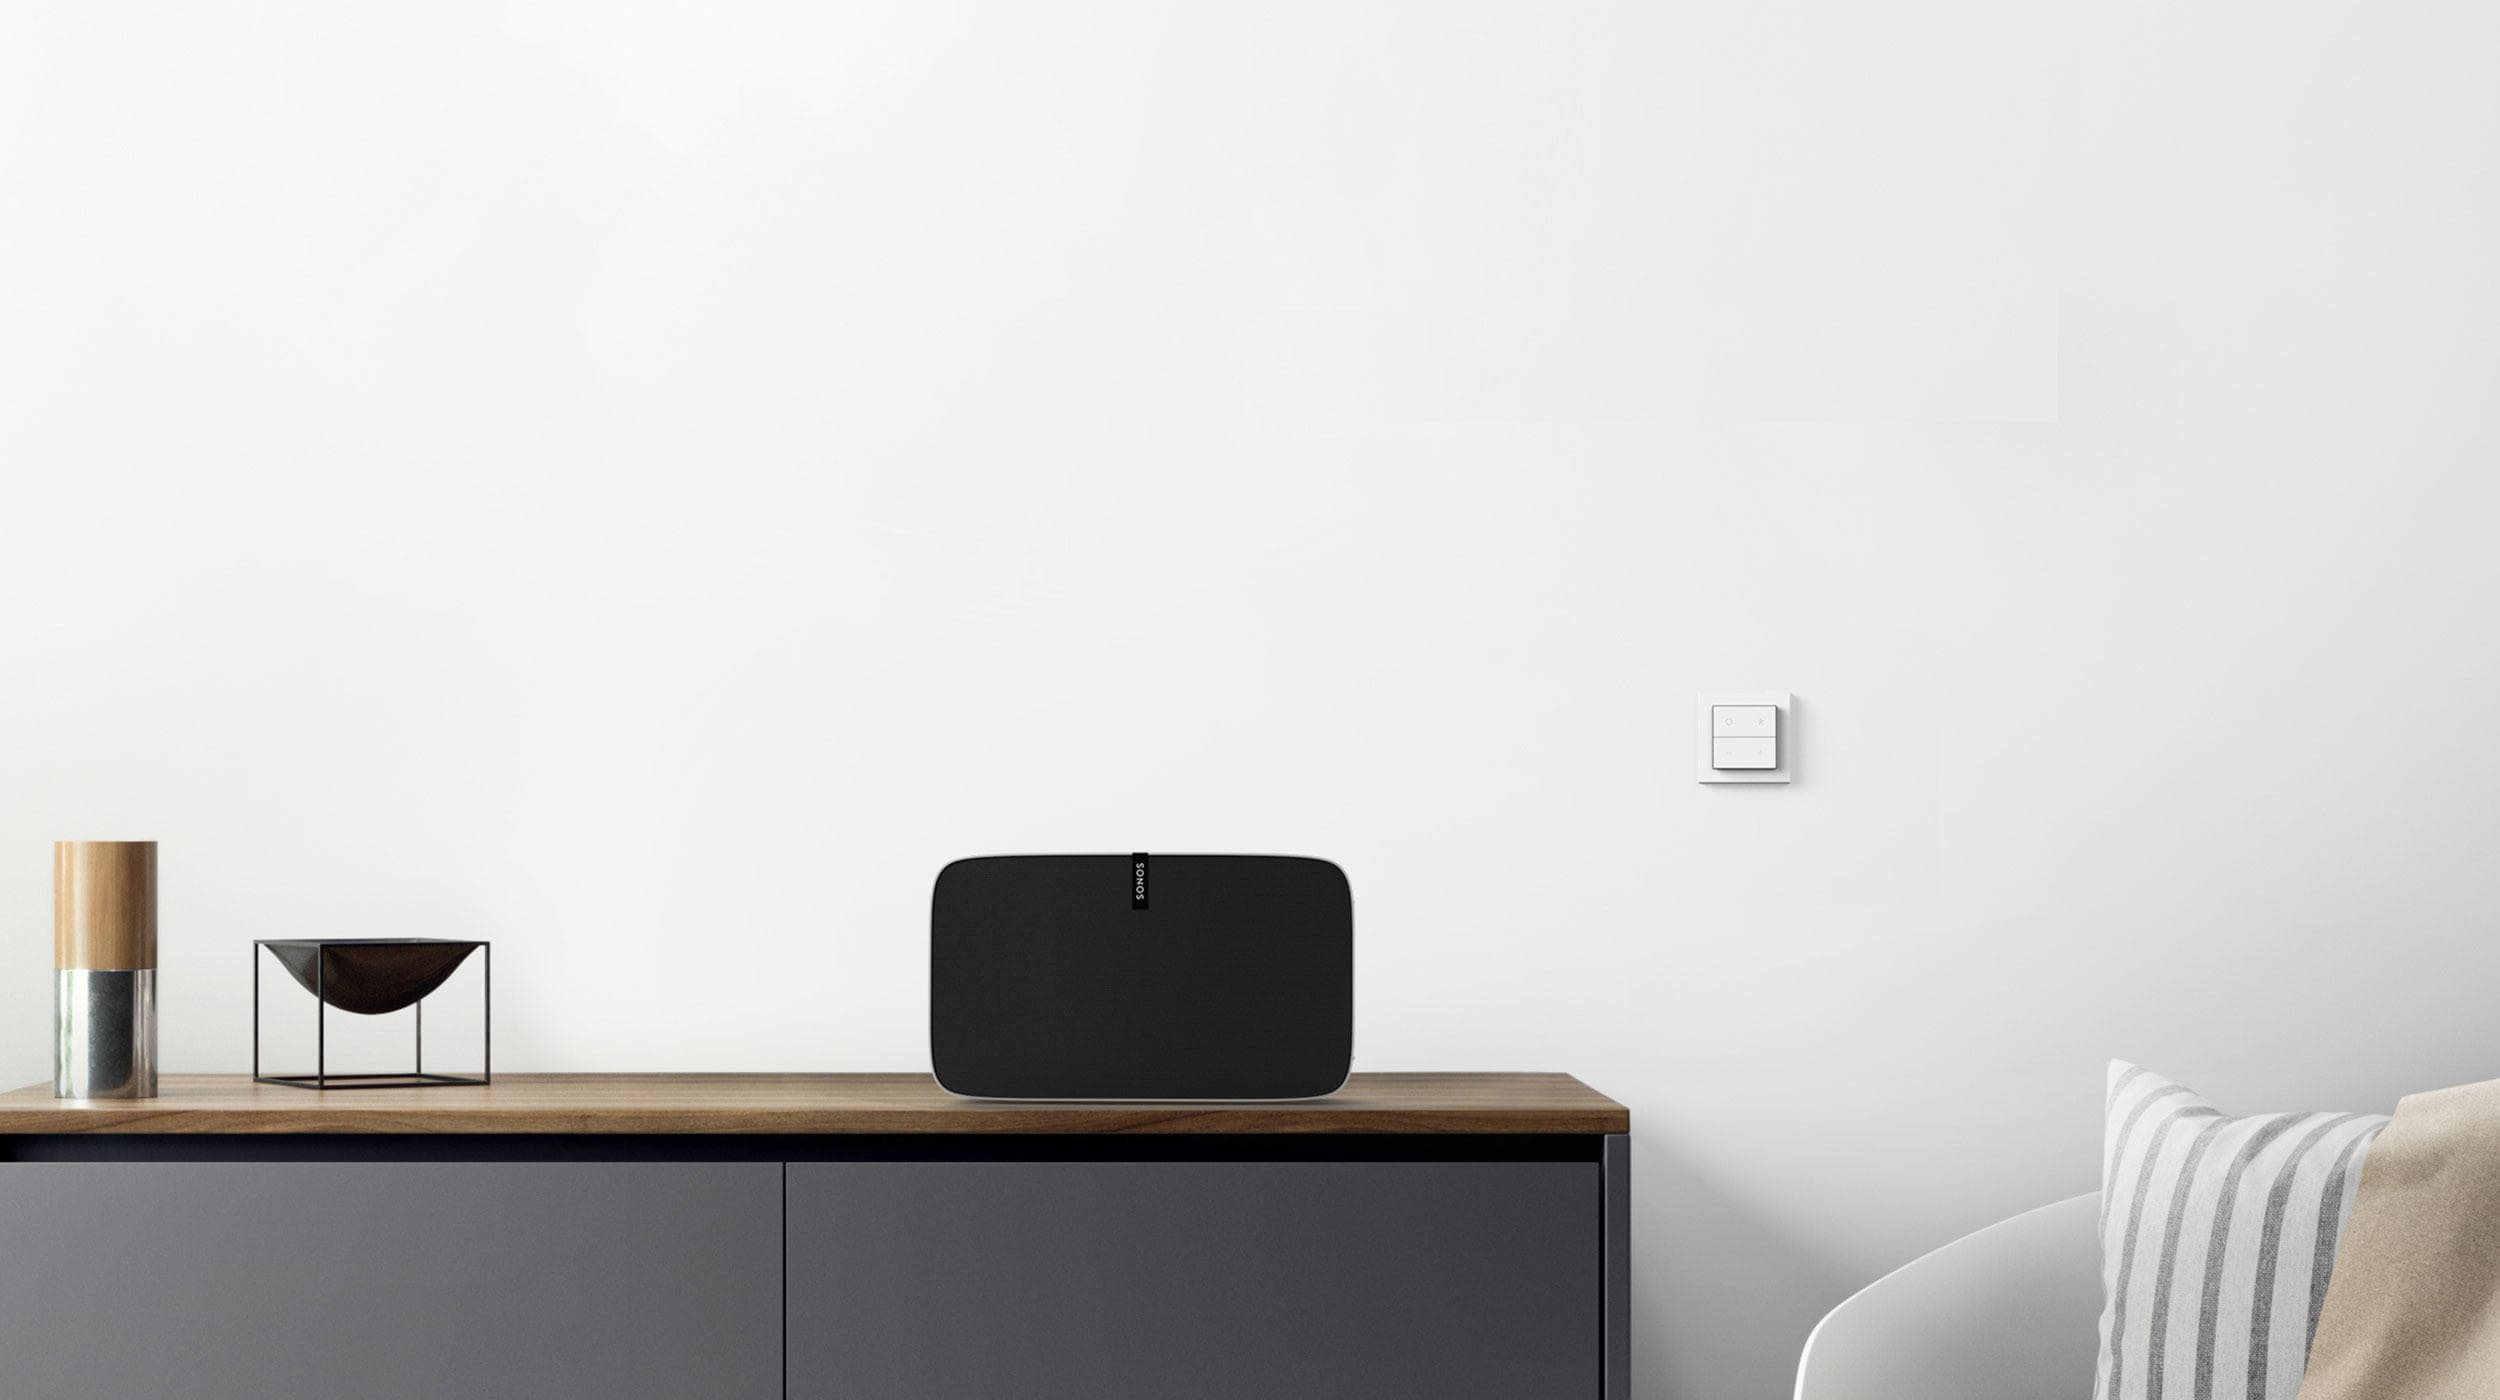 Nuimo Click White fixed on a white wall in a sophisticated living room next to a Sonos speaker and stylish furniture